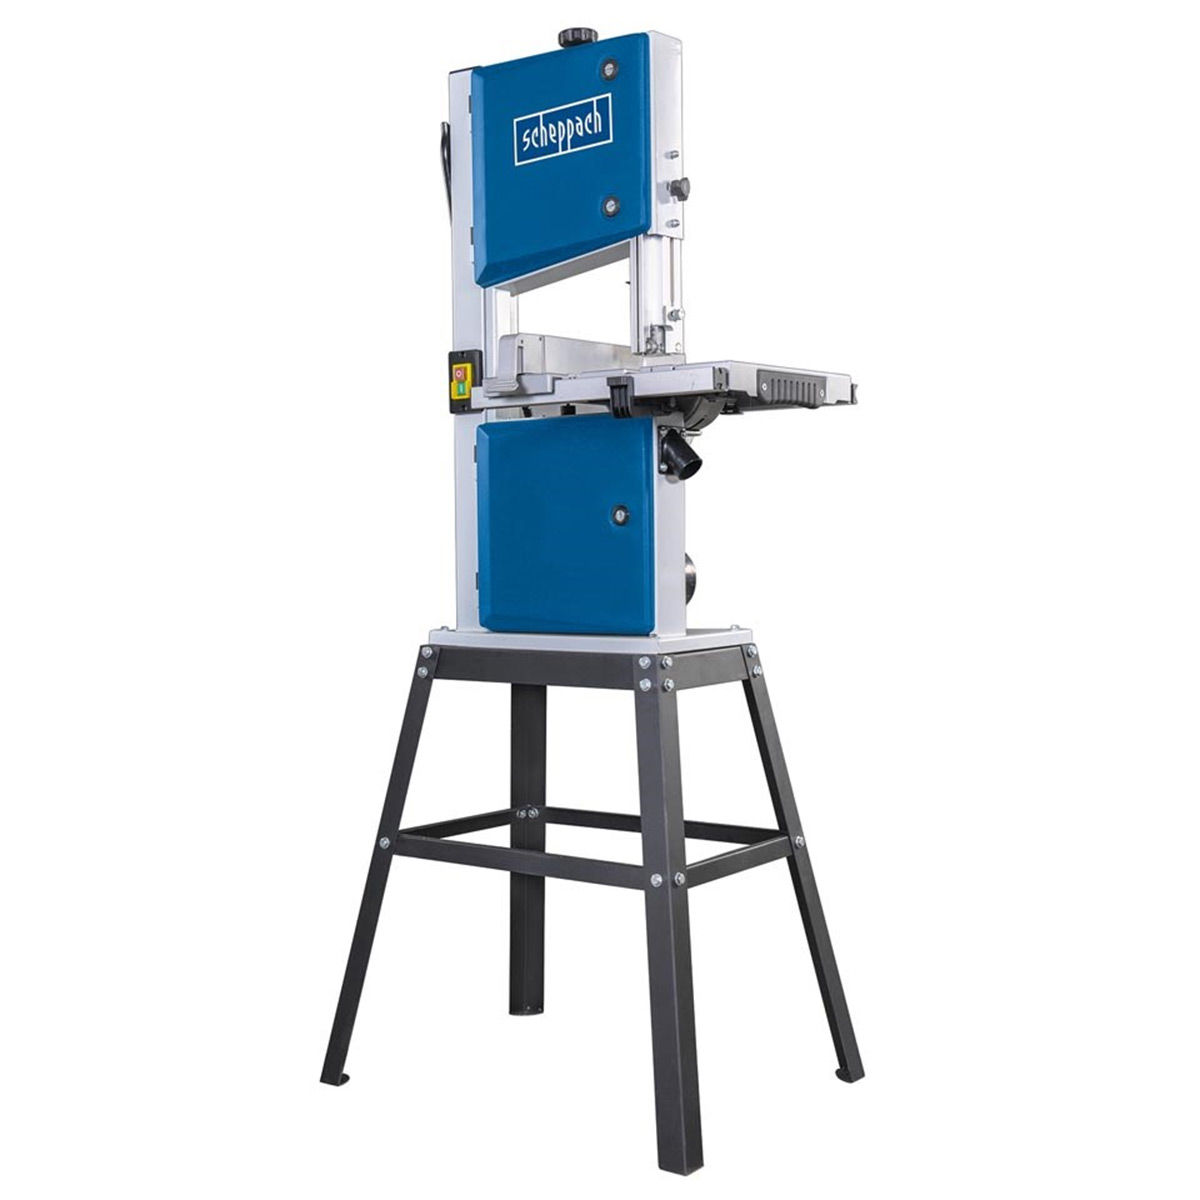 Denver Broncos Halftime Adjustments Key To Broncos 2 0: Toolstop Scheppach HBS250 Bandsaw 10 Inch With Leg Stand